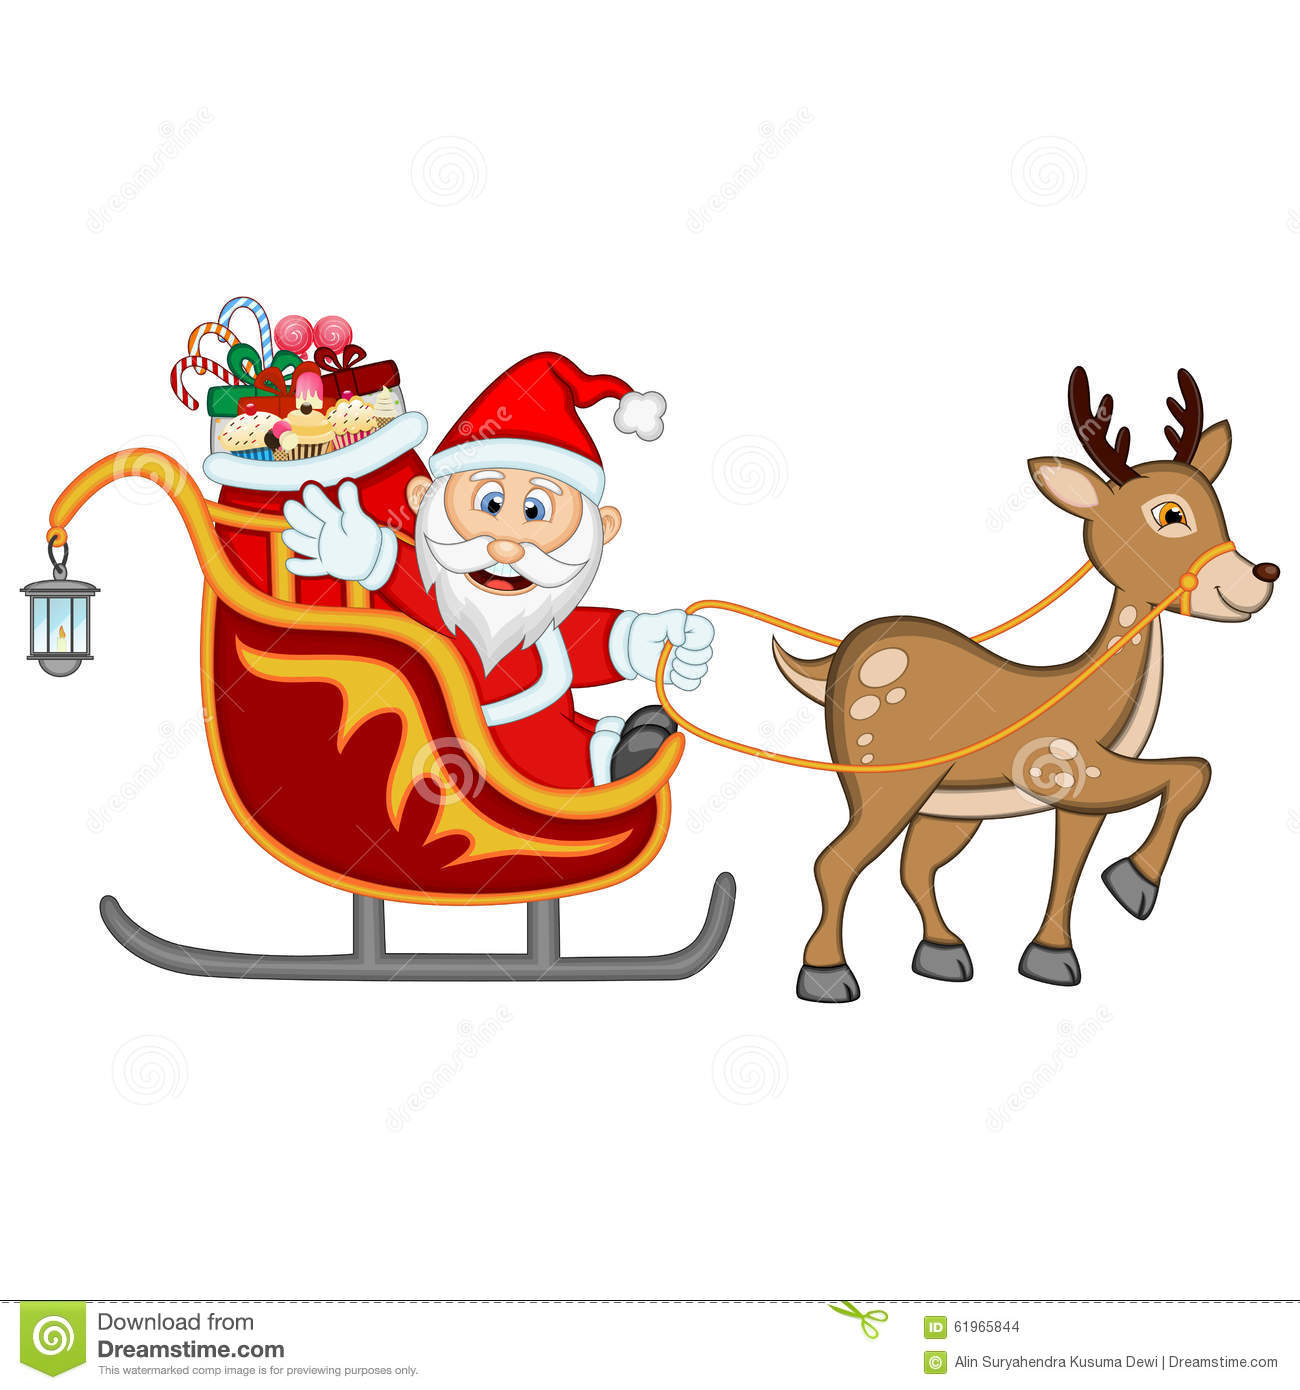 santa claus moving on the sledge with reindeer and brings many